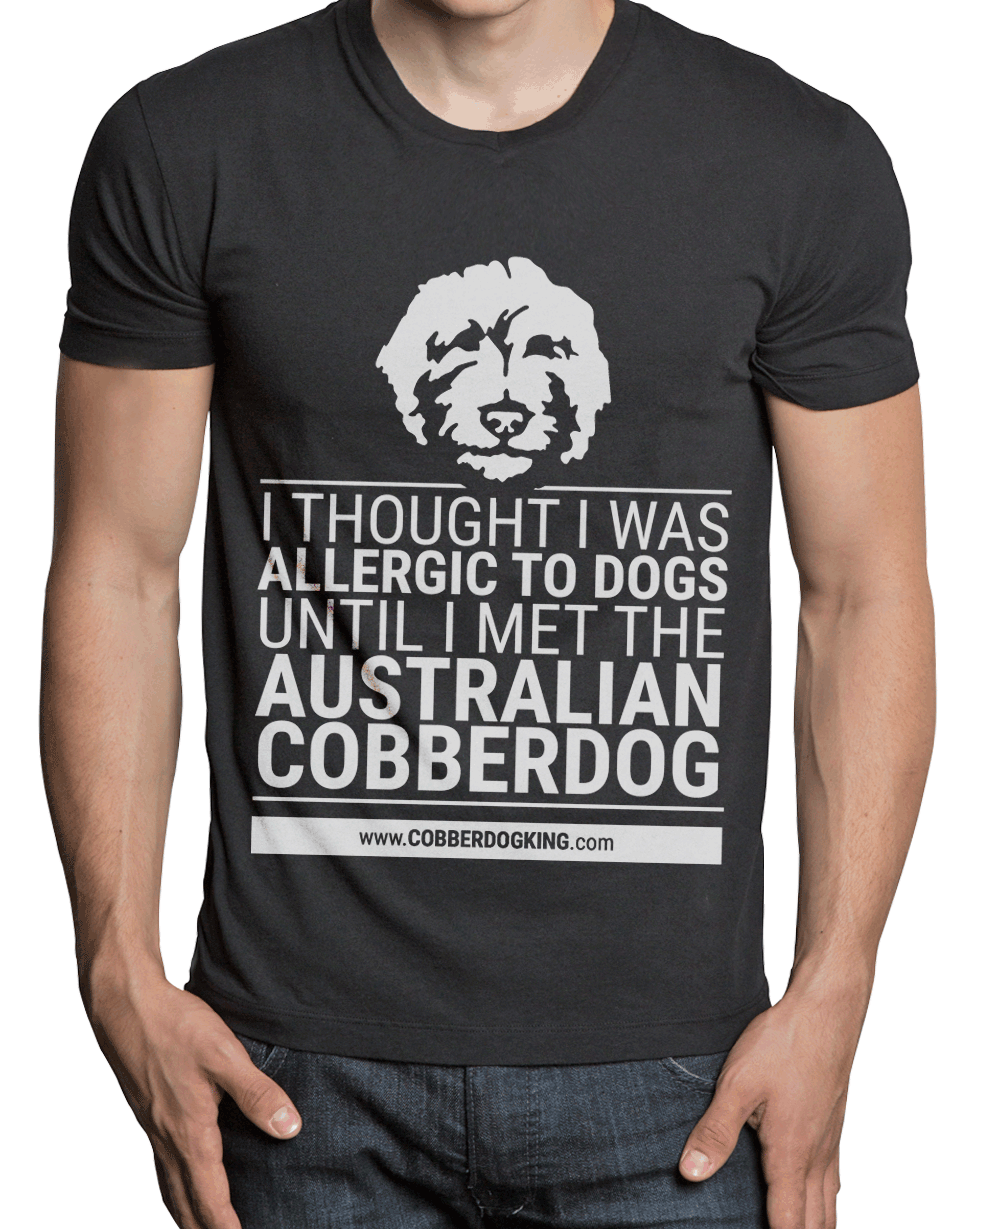 The Australian Cobberdog is a hypoallergenic dog. It has hair that doesn't shed or produce dandruff and so it doesn't dirty the house or produce allergy